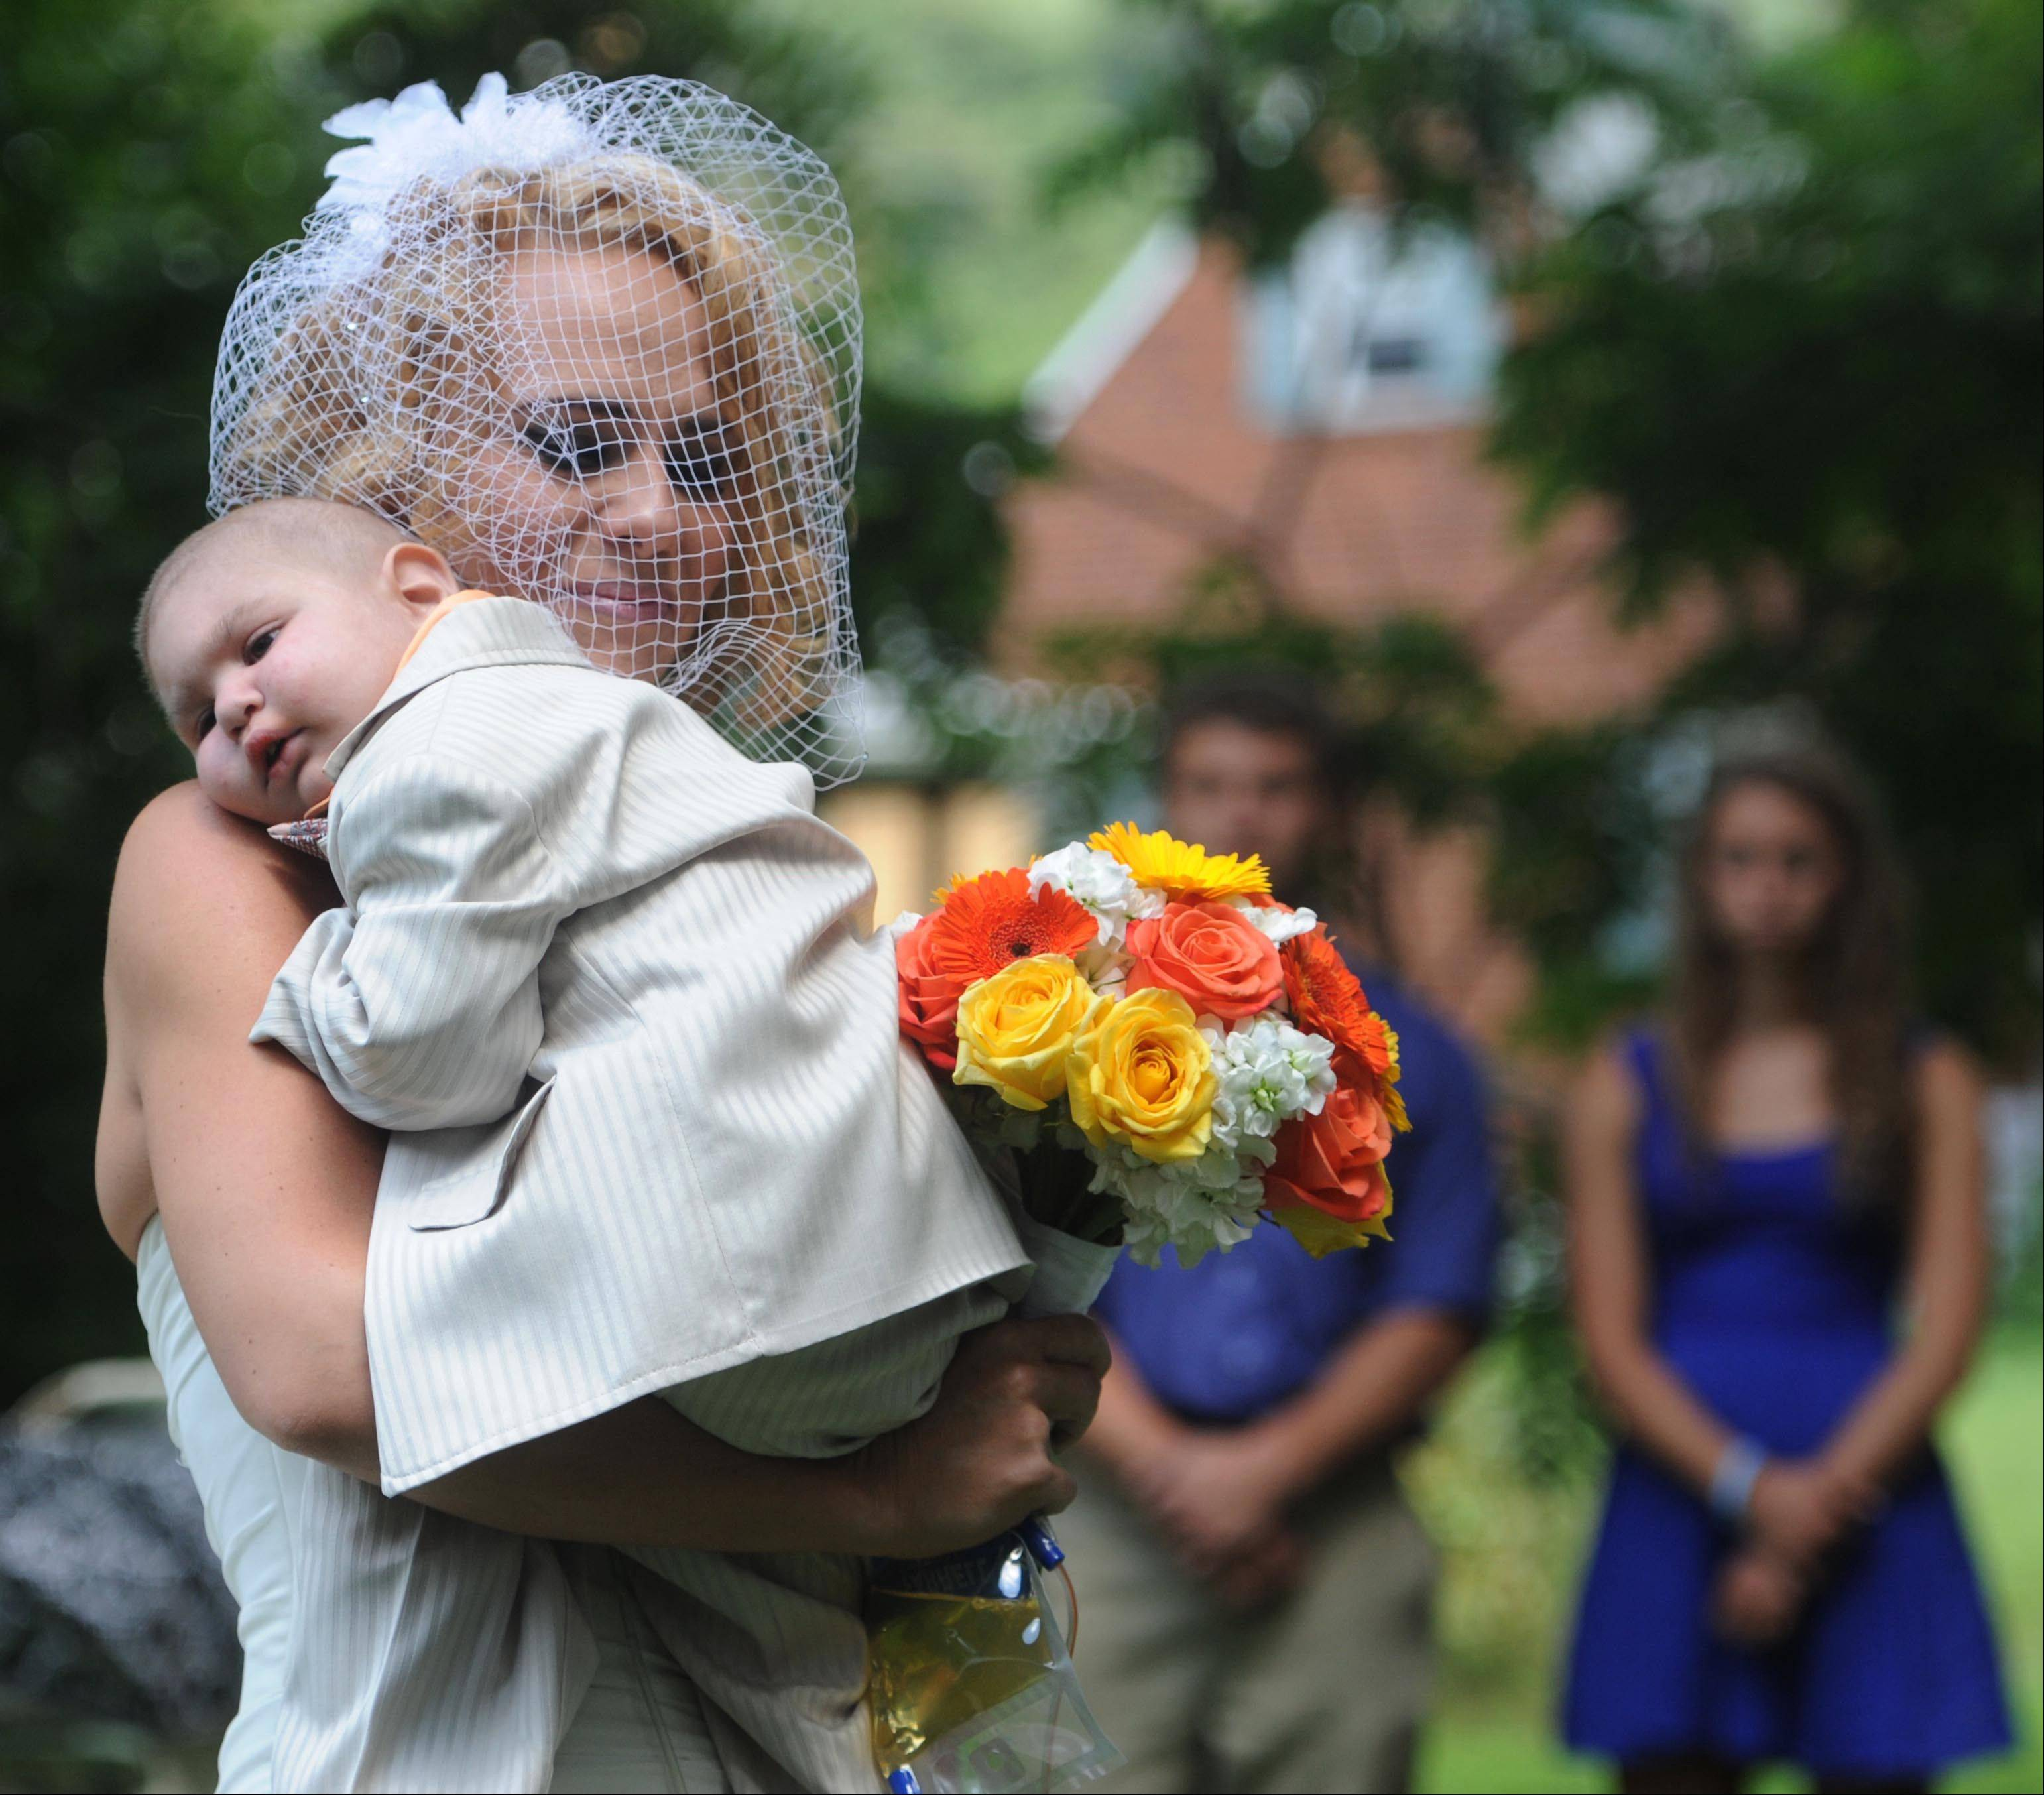 This Aug. 3, 2013 file photo, Christine Swidorsky carries her son and the couple�s best man, Logan Stevenson, 2, down the aisle to her husband-to-be Sean Stevenson during the wedding ceremony in Jeannette, Pa., Christine Swidorsky Stevenson says on her Facebook page that Logan died in her arms at 8:18 p.m. Monday, Aug. 5, 2013, at their home in Jeannette, about 25 miles east of Pittsburgh. Logan, who was born Oct. 22, 2010, was diagnosed shortly after his first birthday with acute myeloid leukemia. The Stevensons abandoned an original wedding date of July 2014 after learning from doctors late last month that their son had two to three weeks to live.